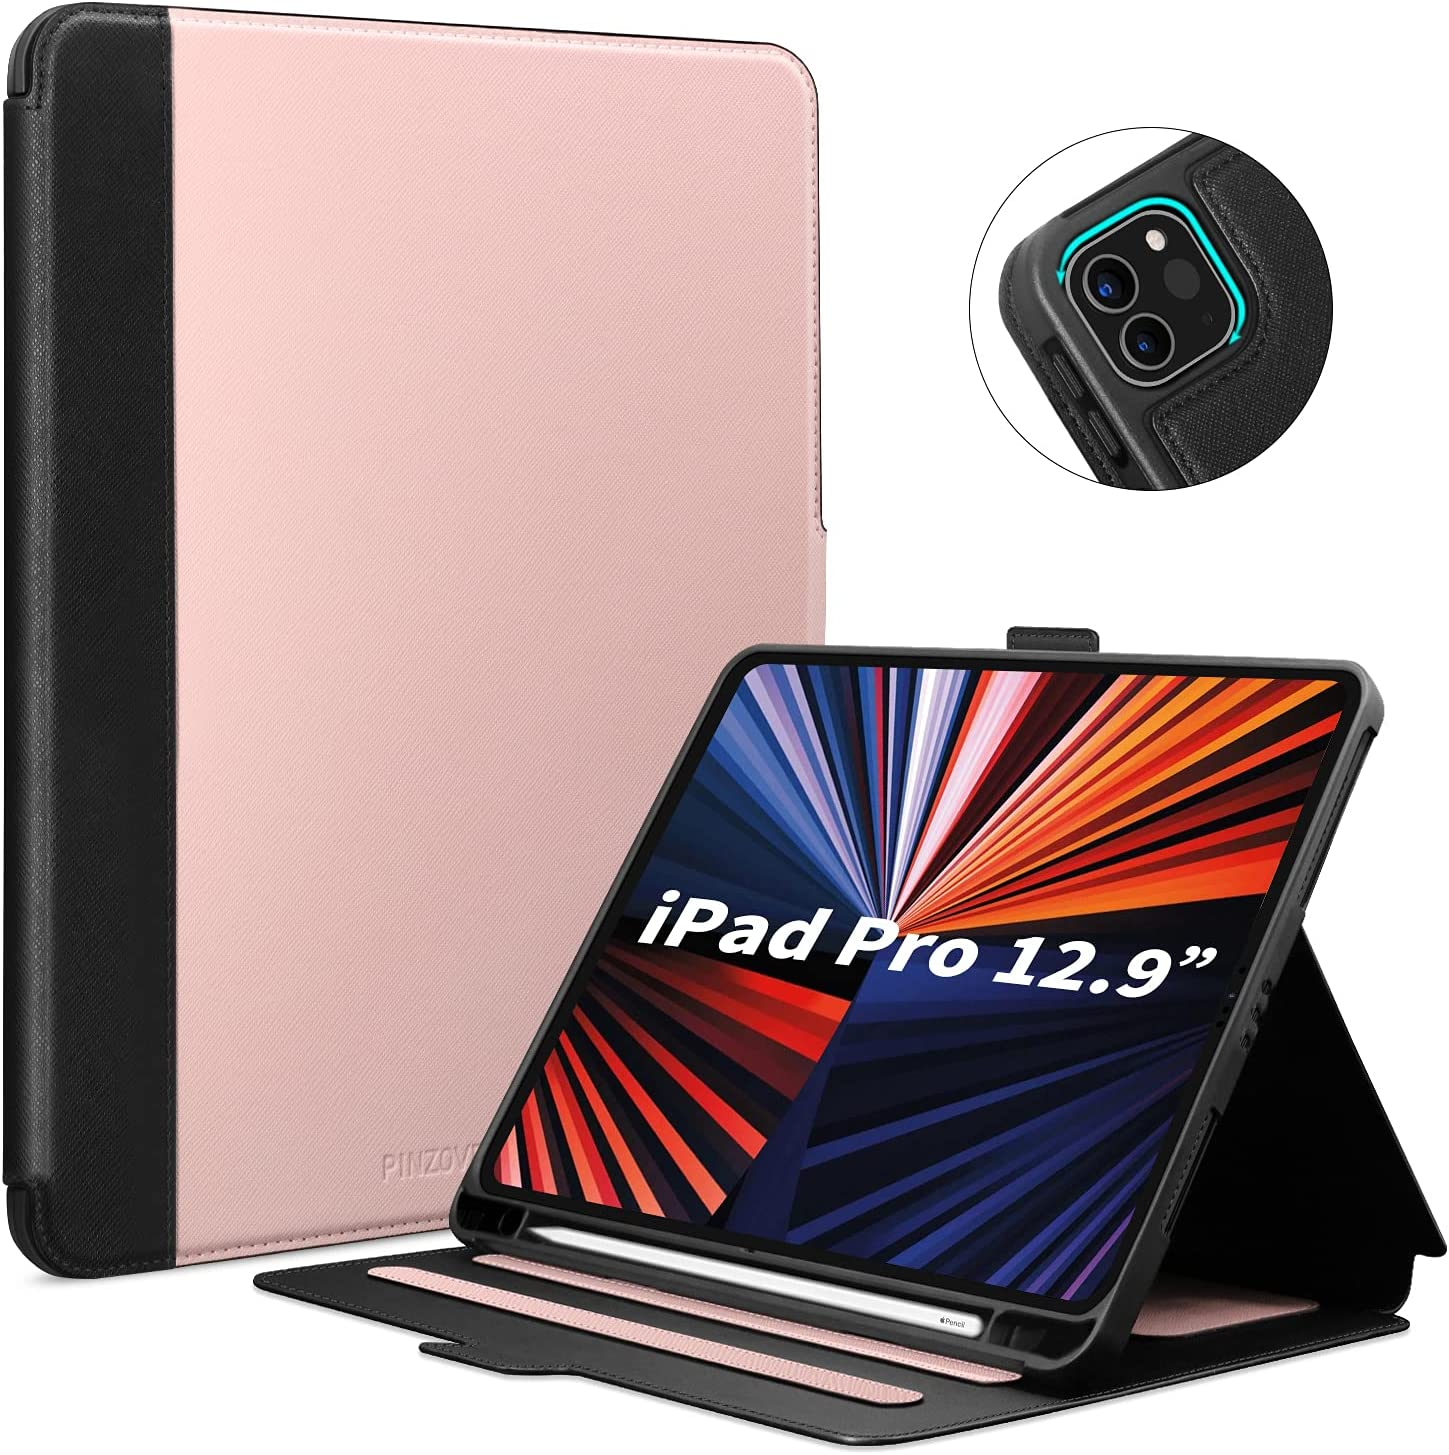 iPad Pro 12.9 case 2021, iPad Pro Case 12.9 inch with Pencil Holder, Soft TPU Back Case for iPad Pro 12.9 5th Gen/ iPad Pro 4th Gen 2020/ iPad Pro 3rd Gen 2018, Viewing Stand, Auto Wake/Sleep Cover